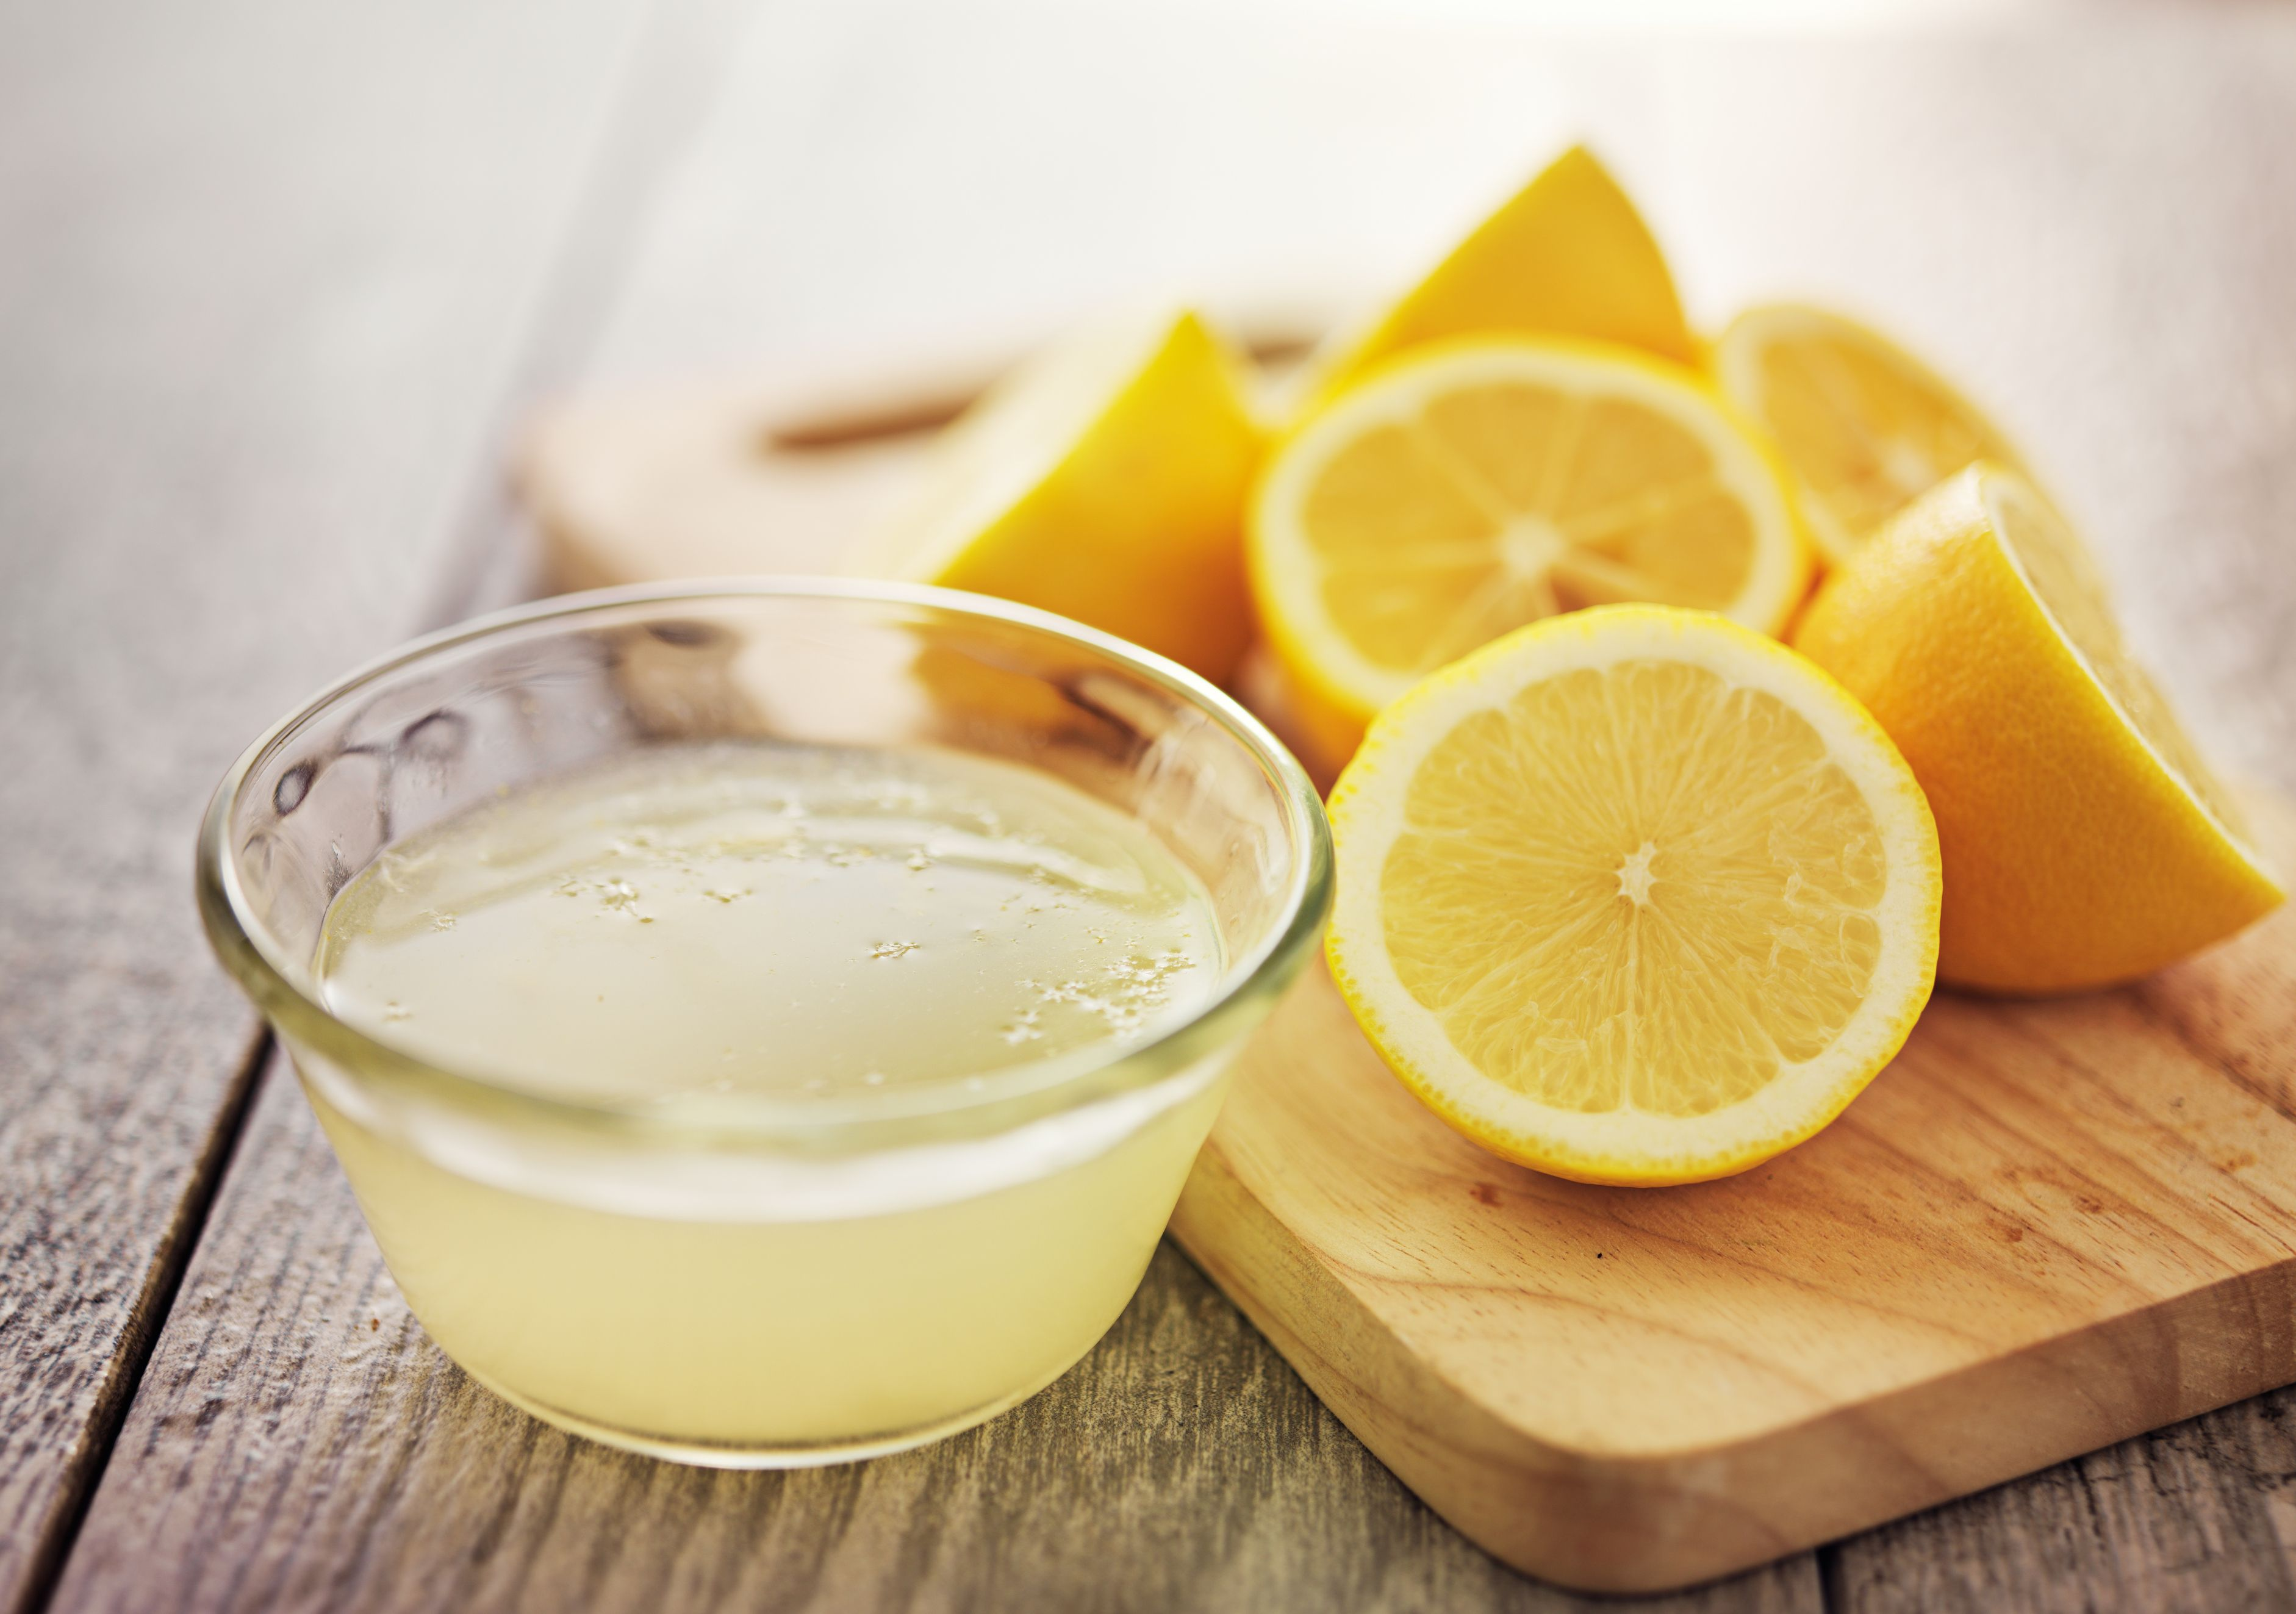 How to get rid of pimples with lemon